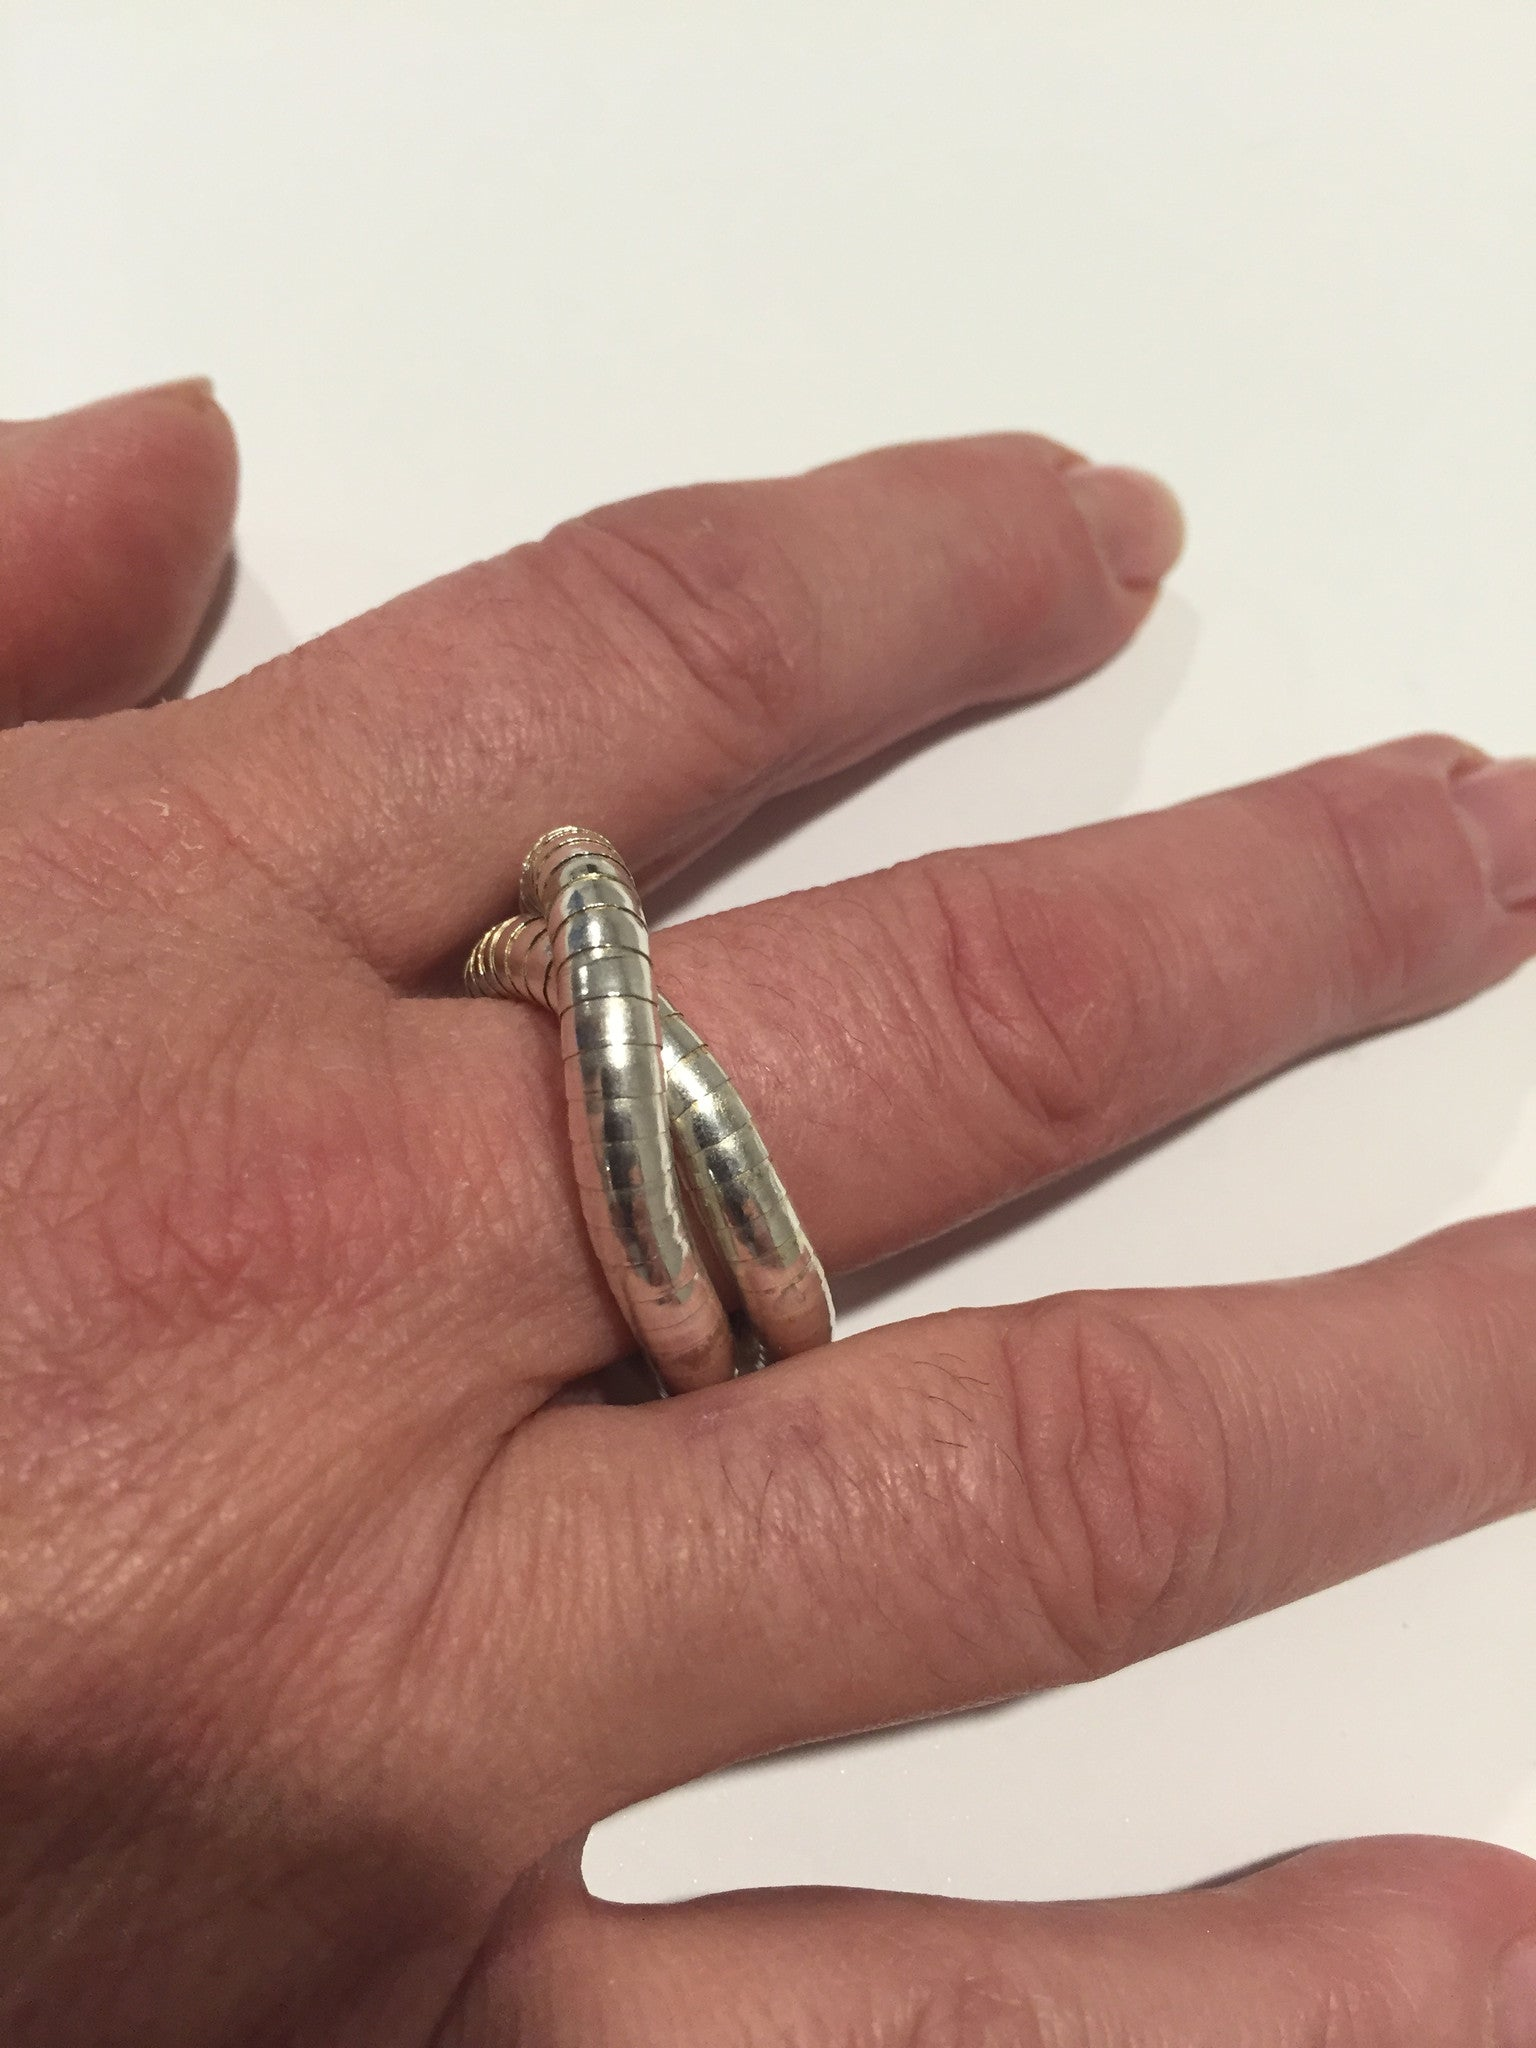 Silver Ring, 5mm thick and 7 inches long